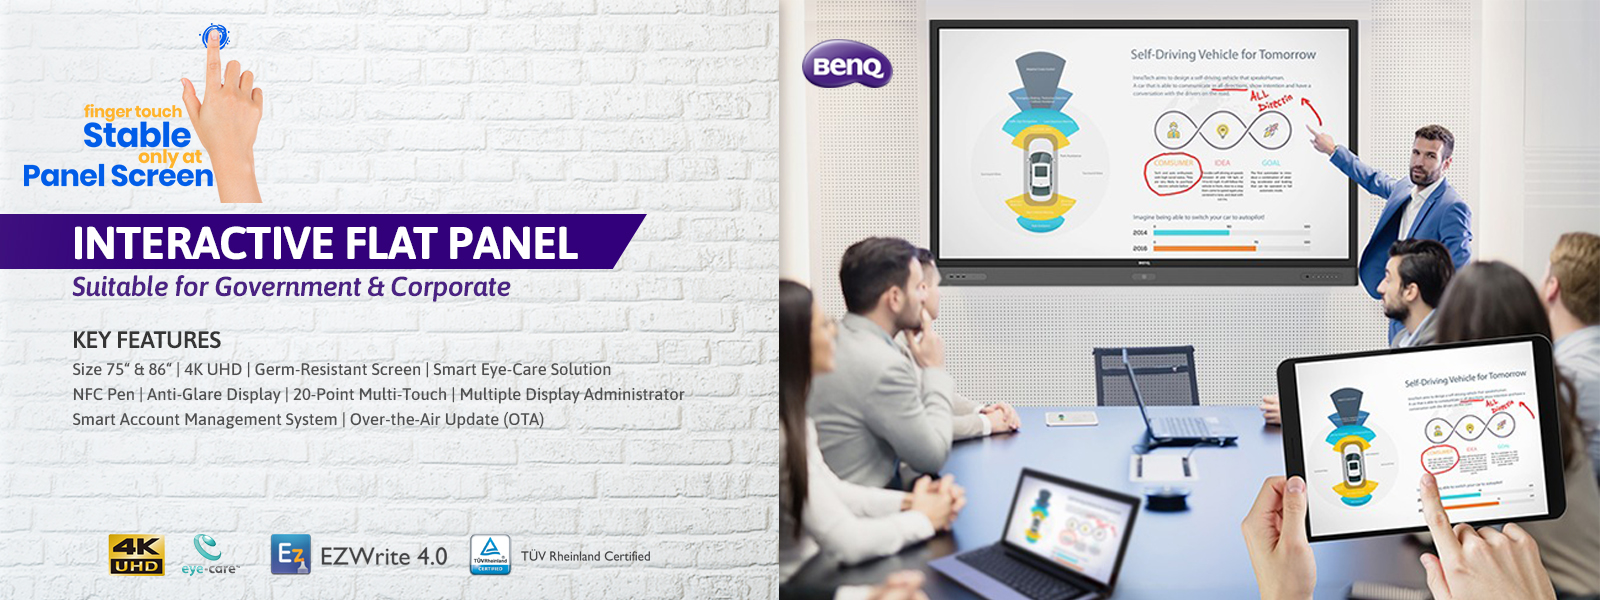 benq interactive flat panel for government & corporate slider